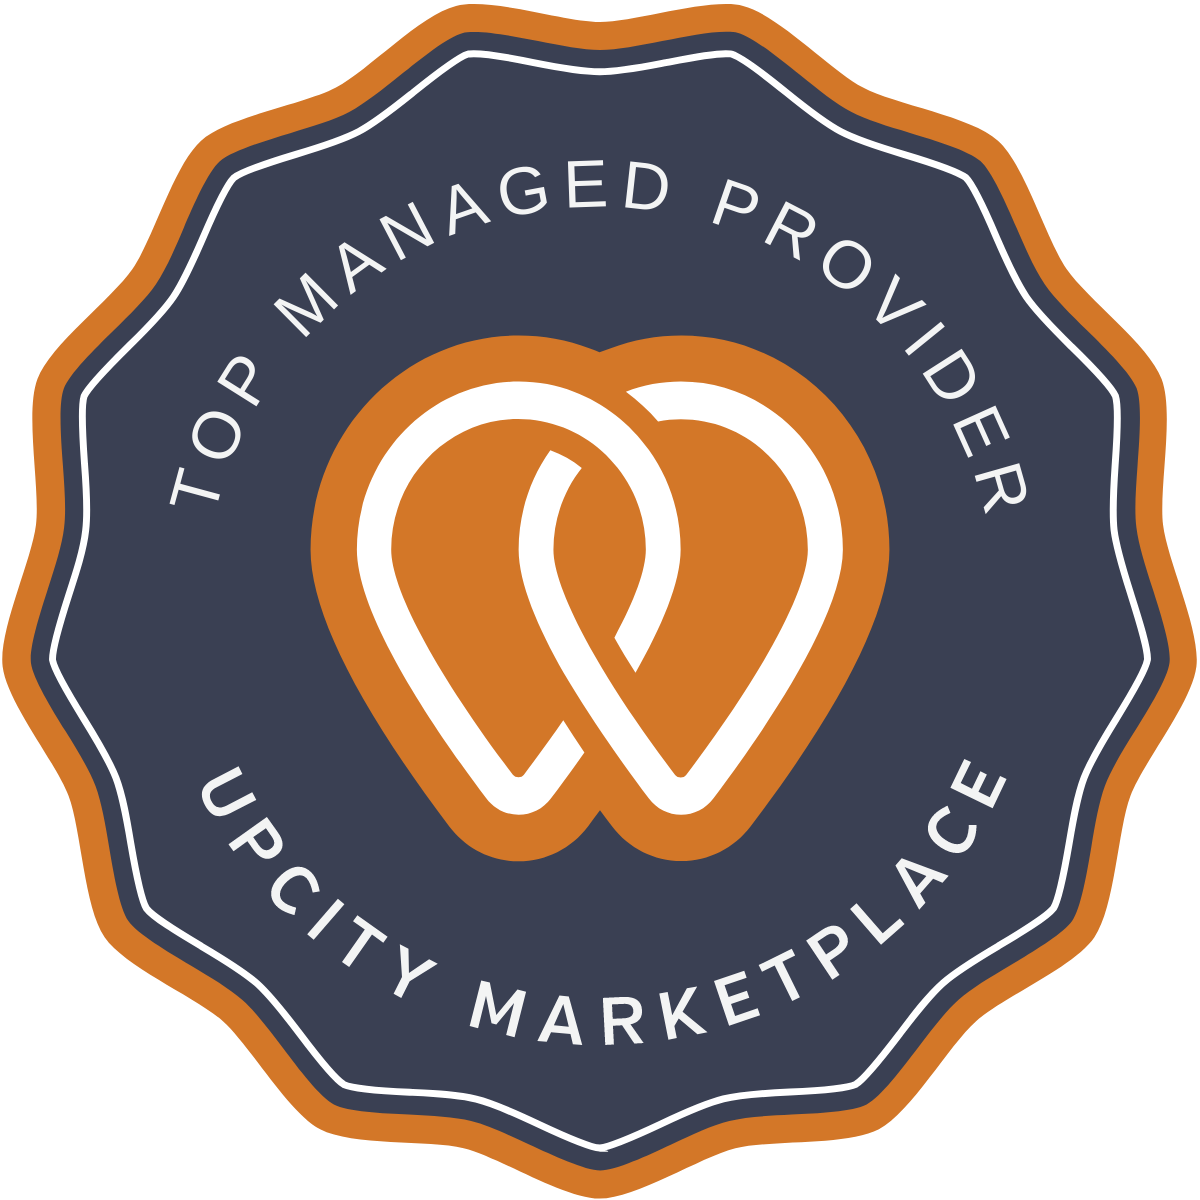 TOP MANAGED PROVIDER